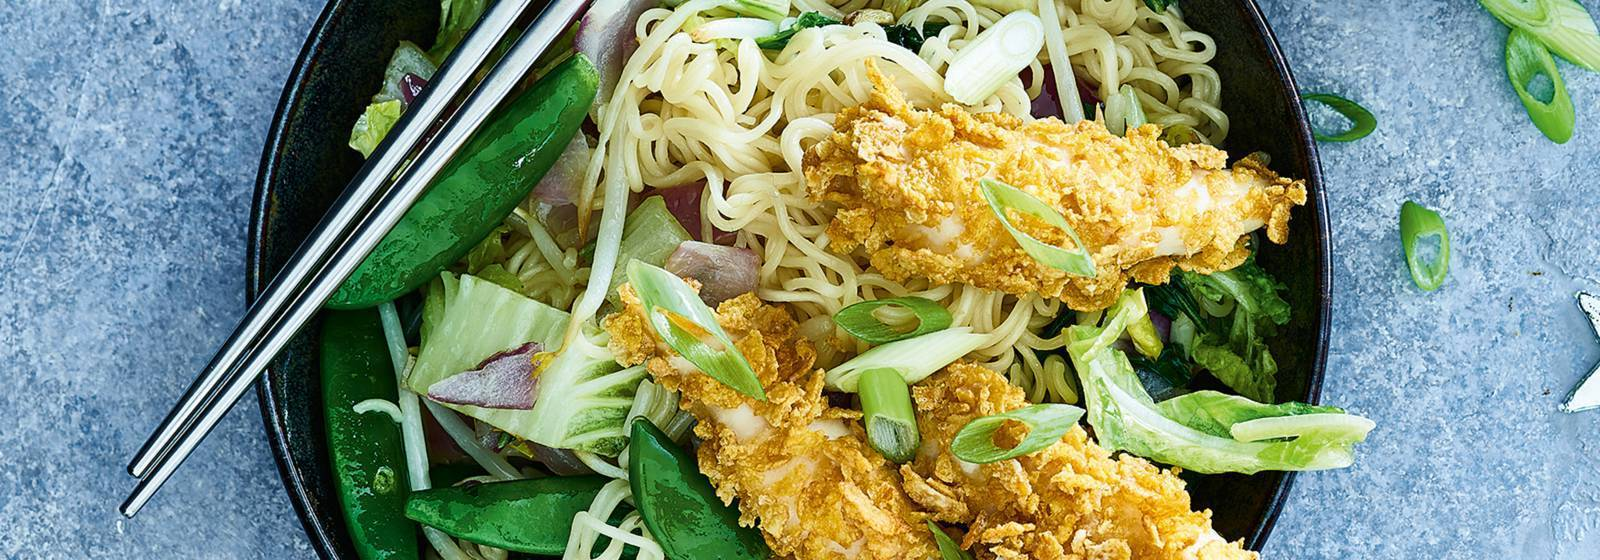 Fried noodles with vegetables and garlic chicken